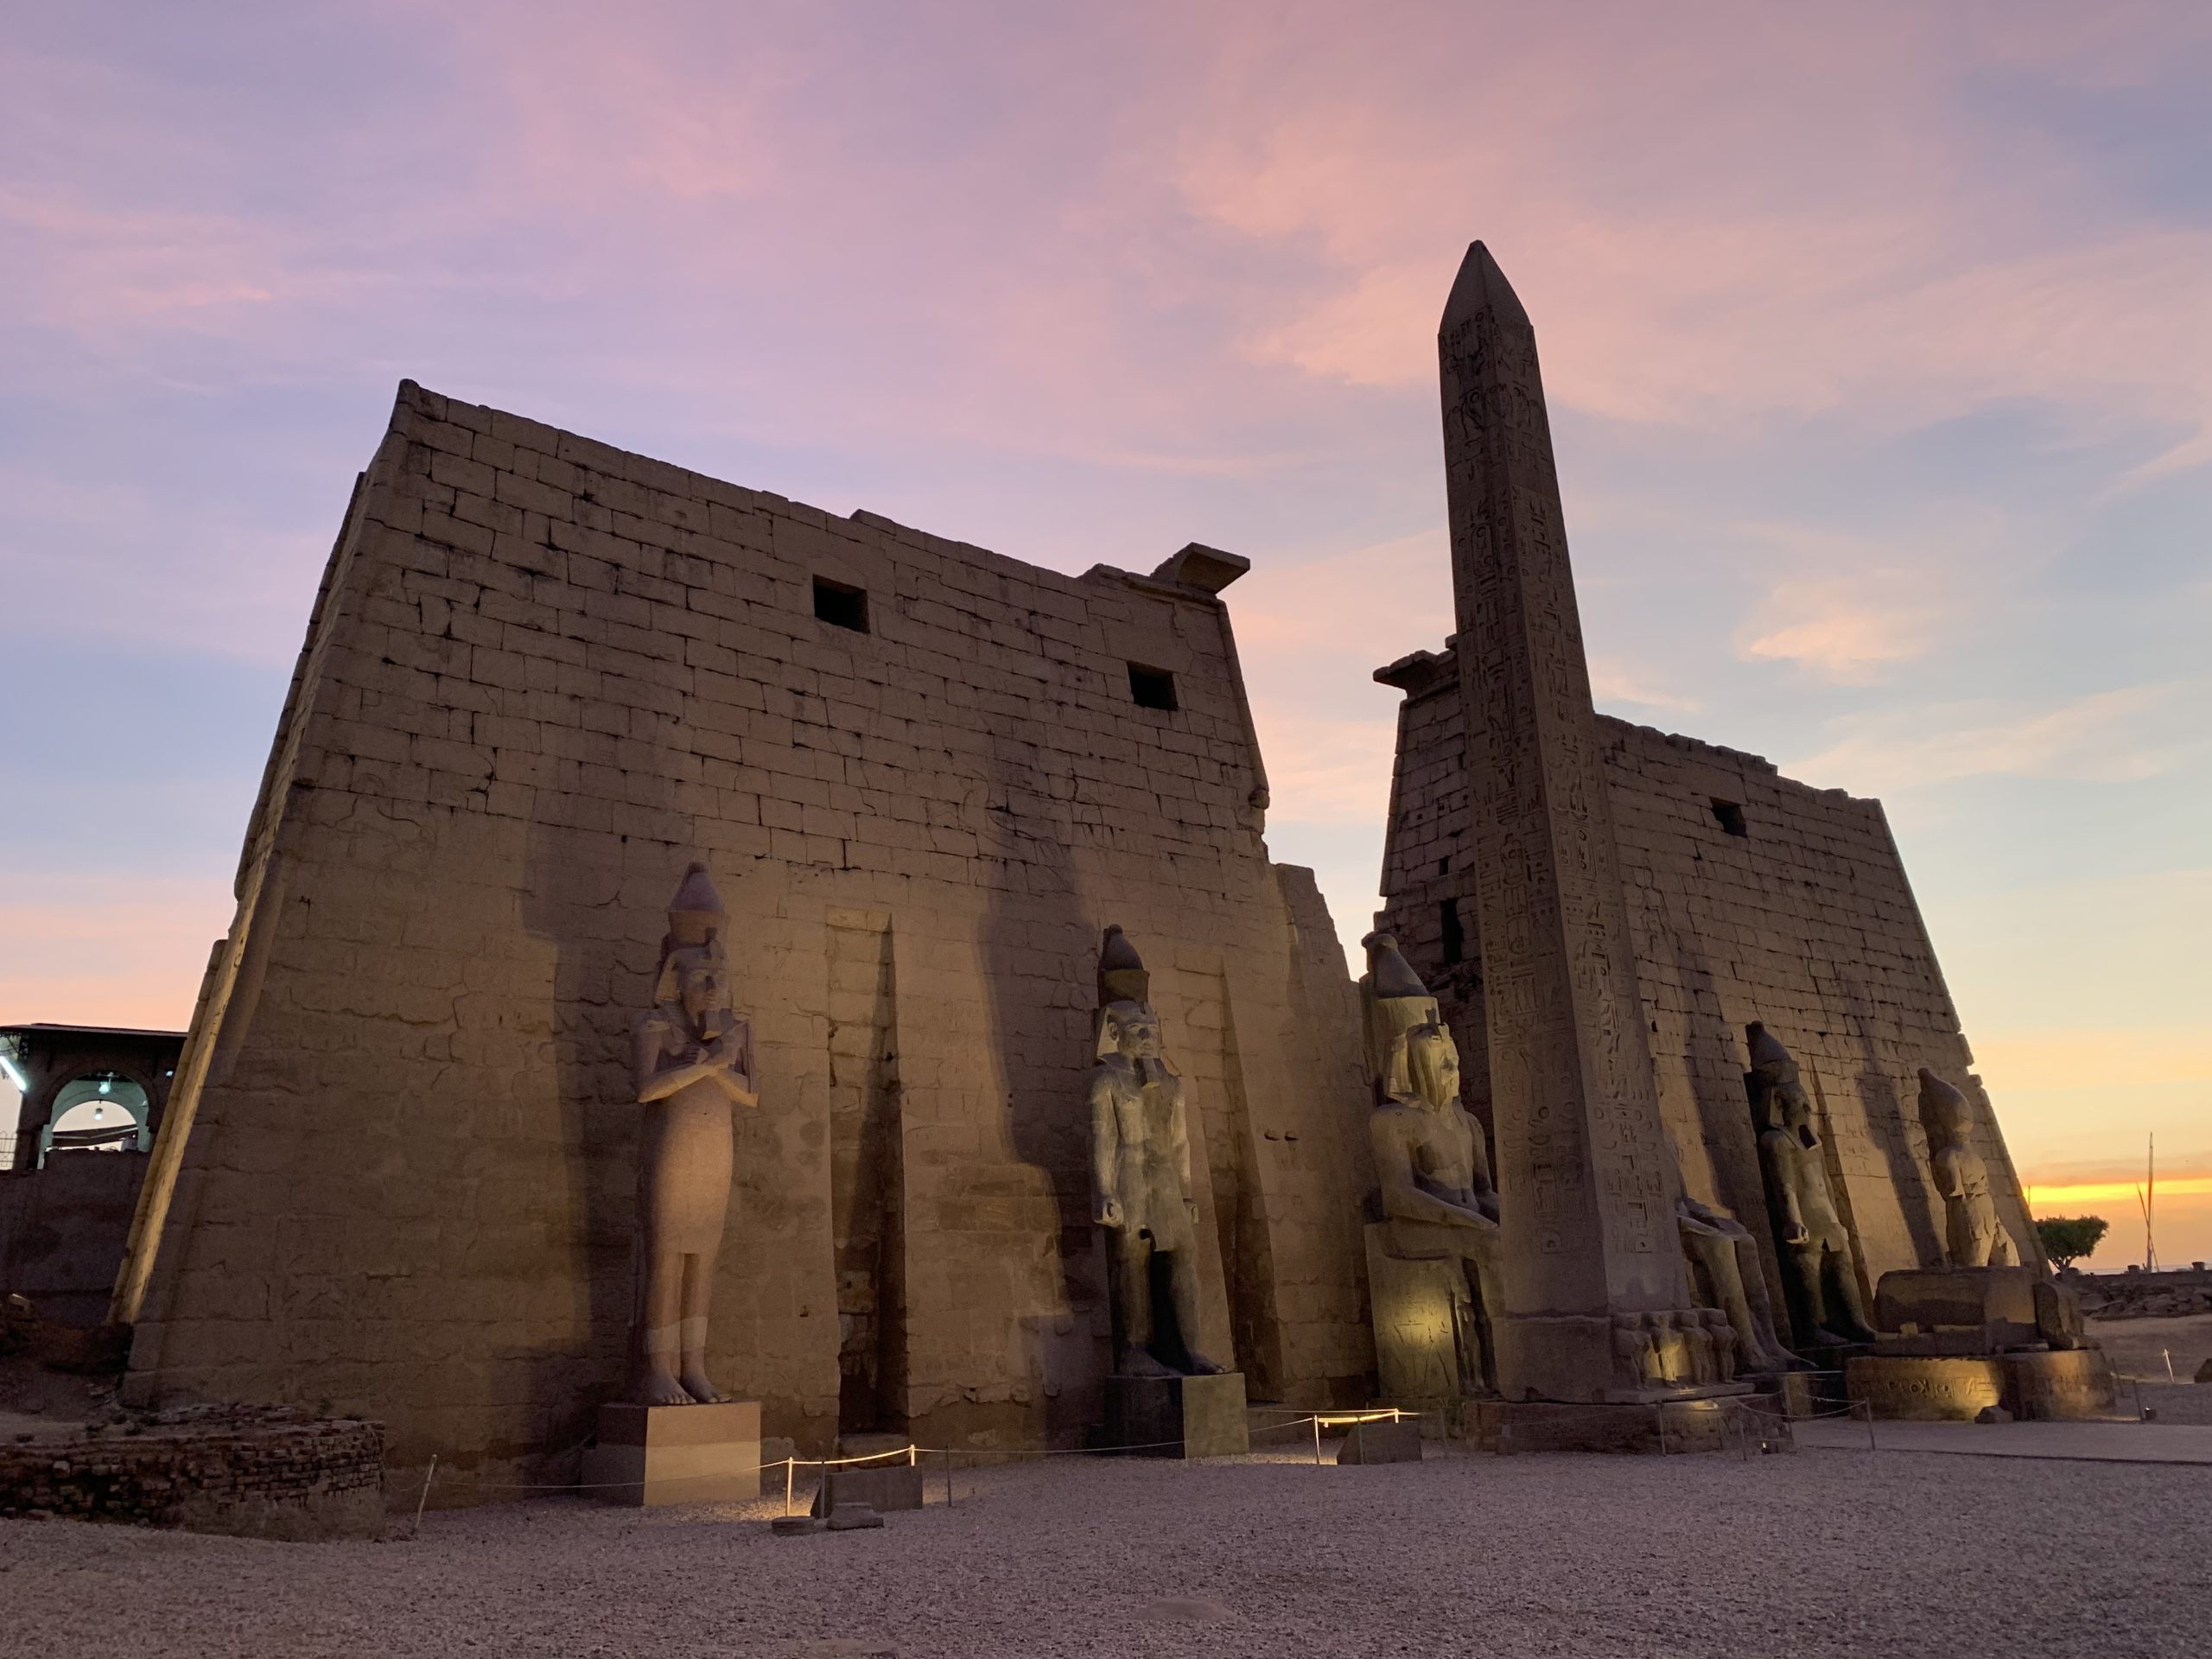 Luxor temple column and statues at sunset